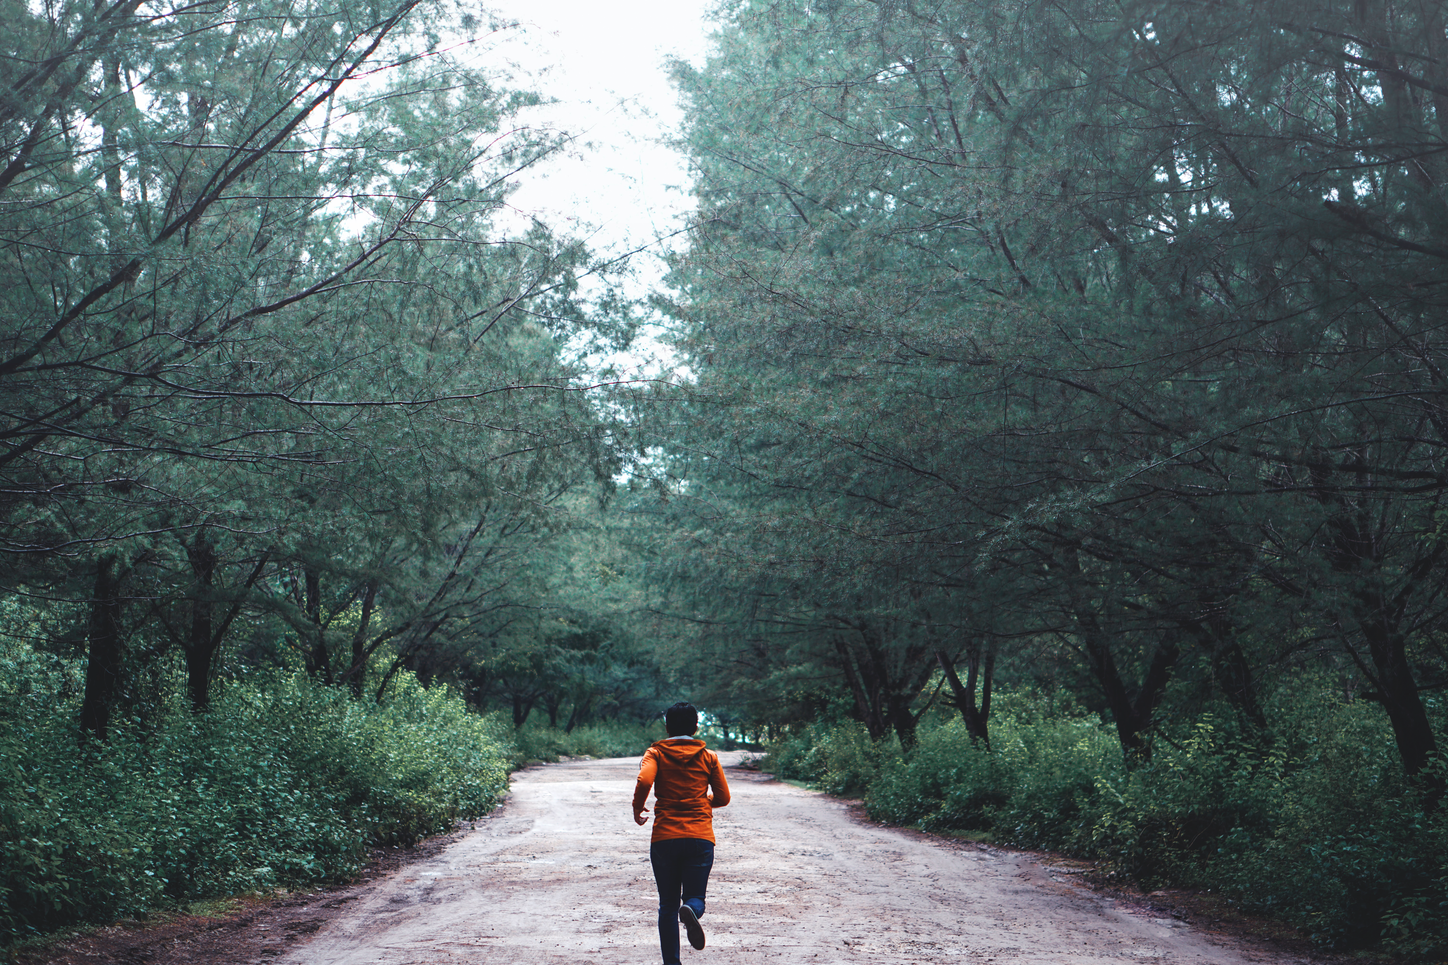 The picture shows a jogger in the forest